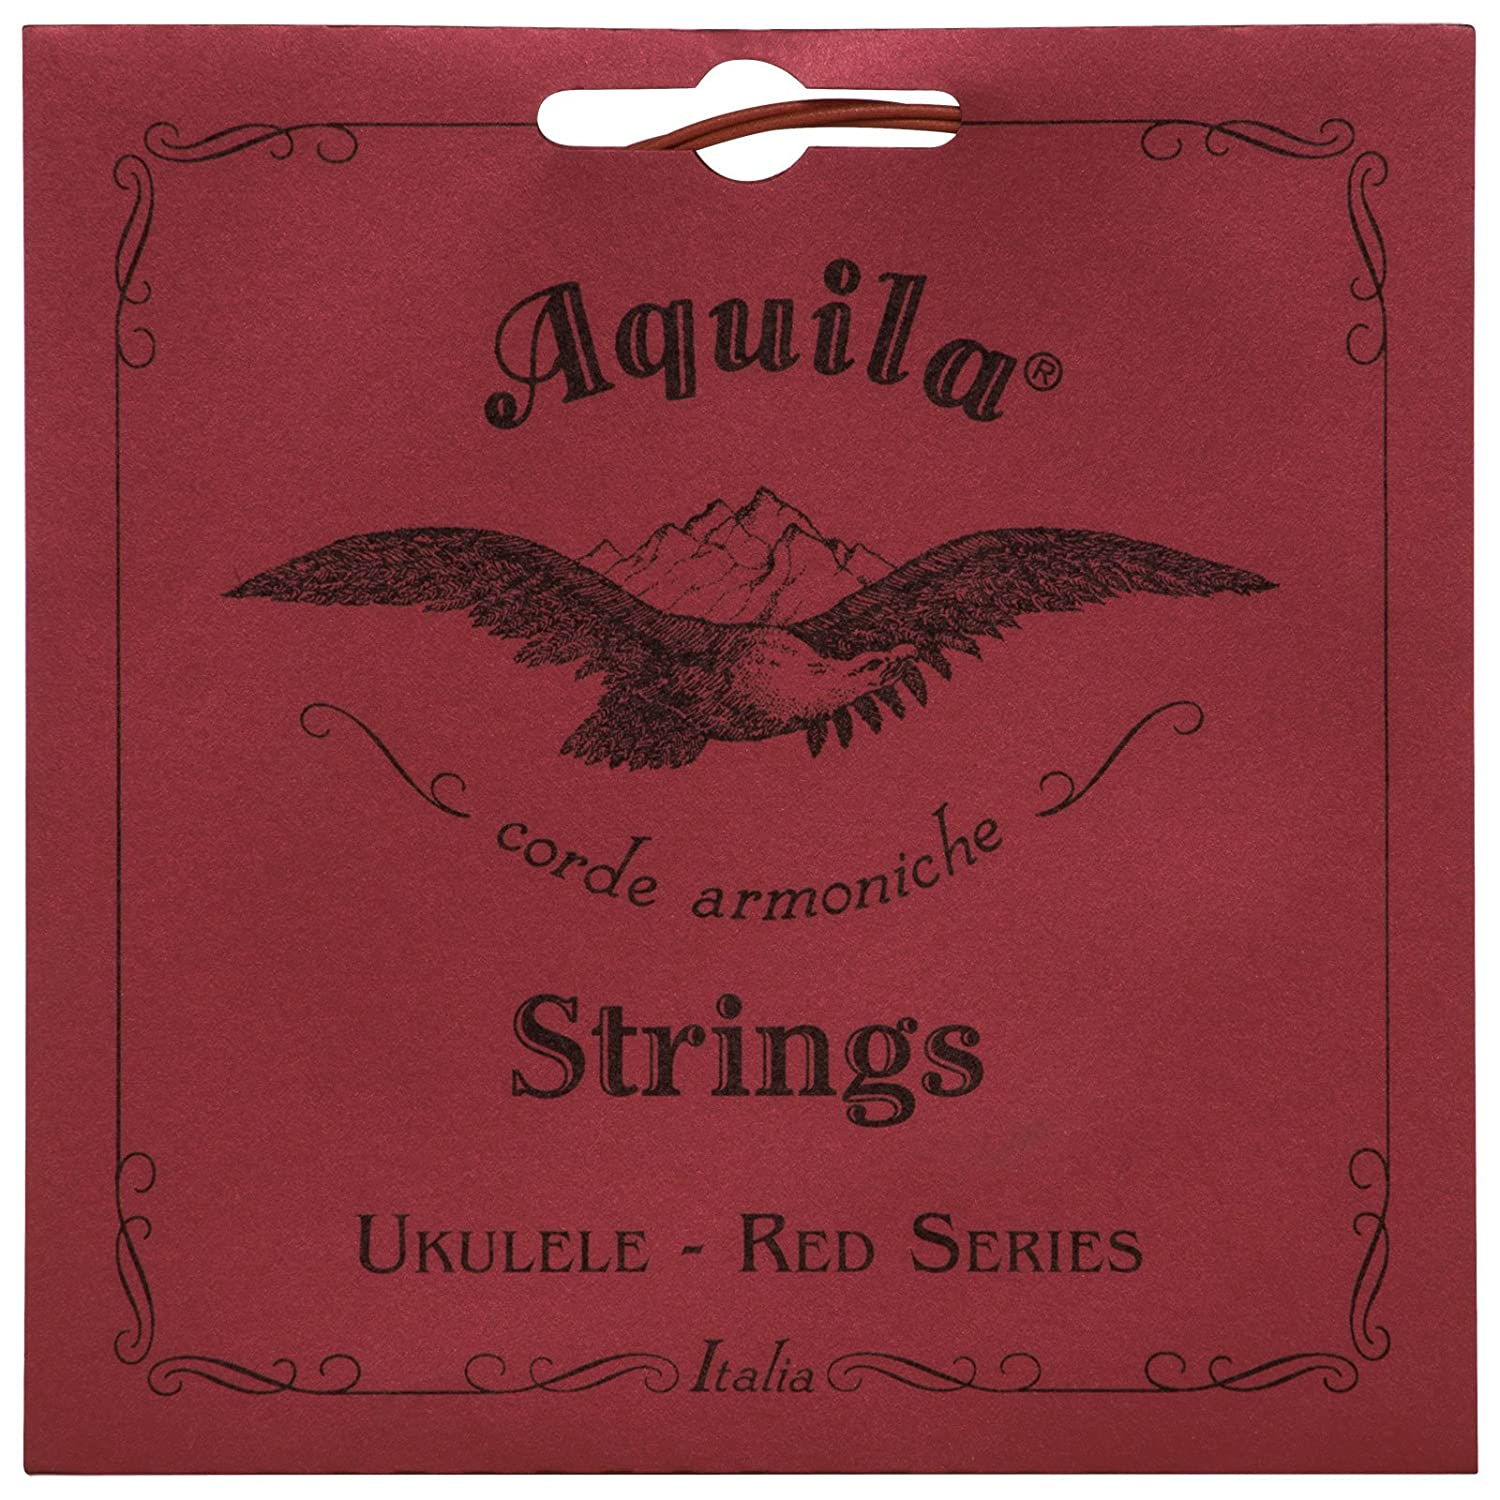 Aquila Red Series AQ-85 Concert Ukulele Strings - High G - Set of 4